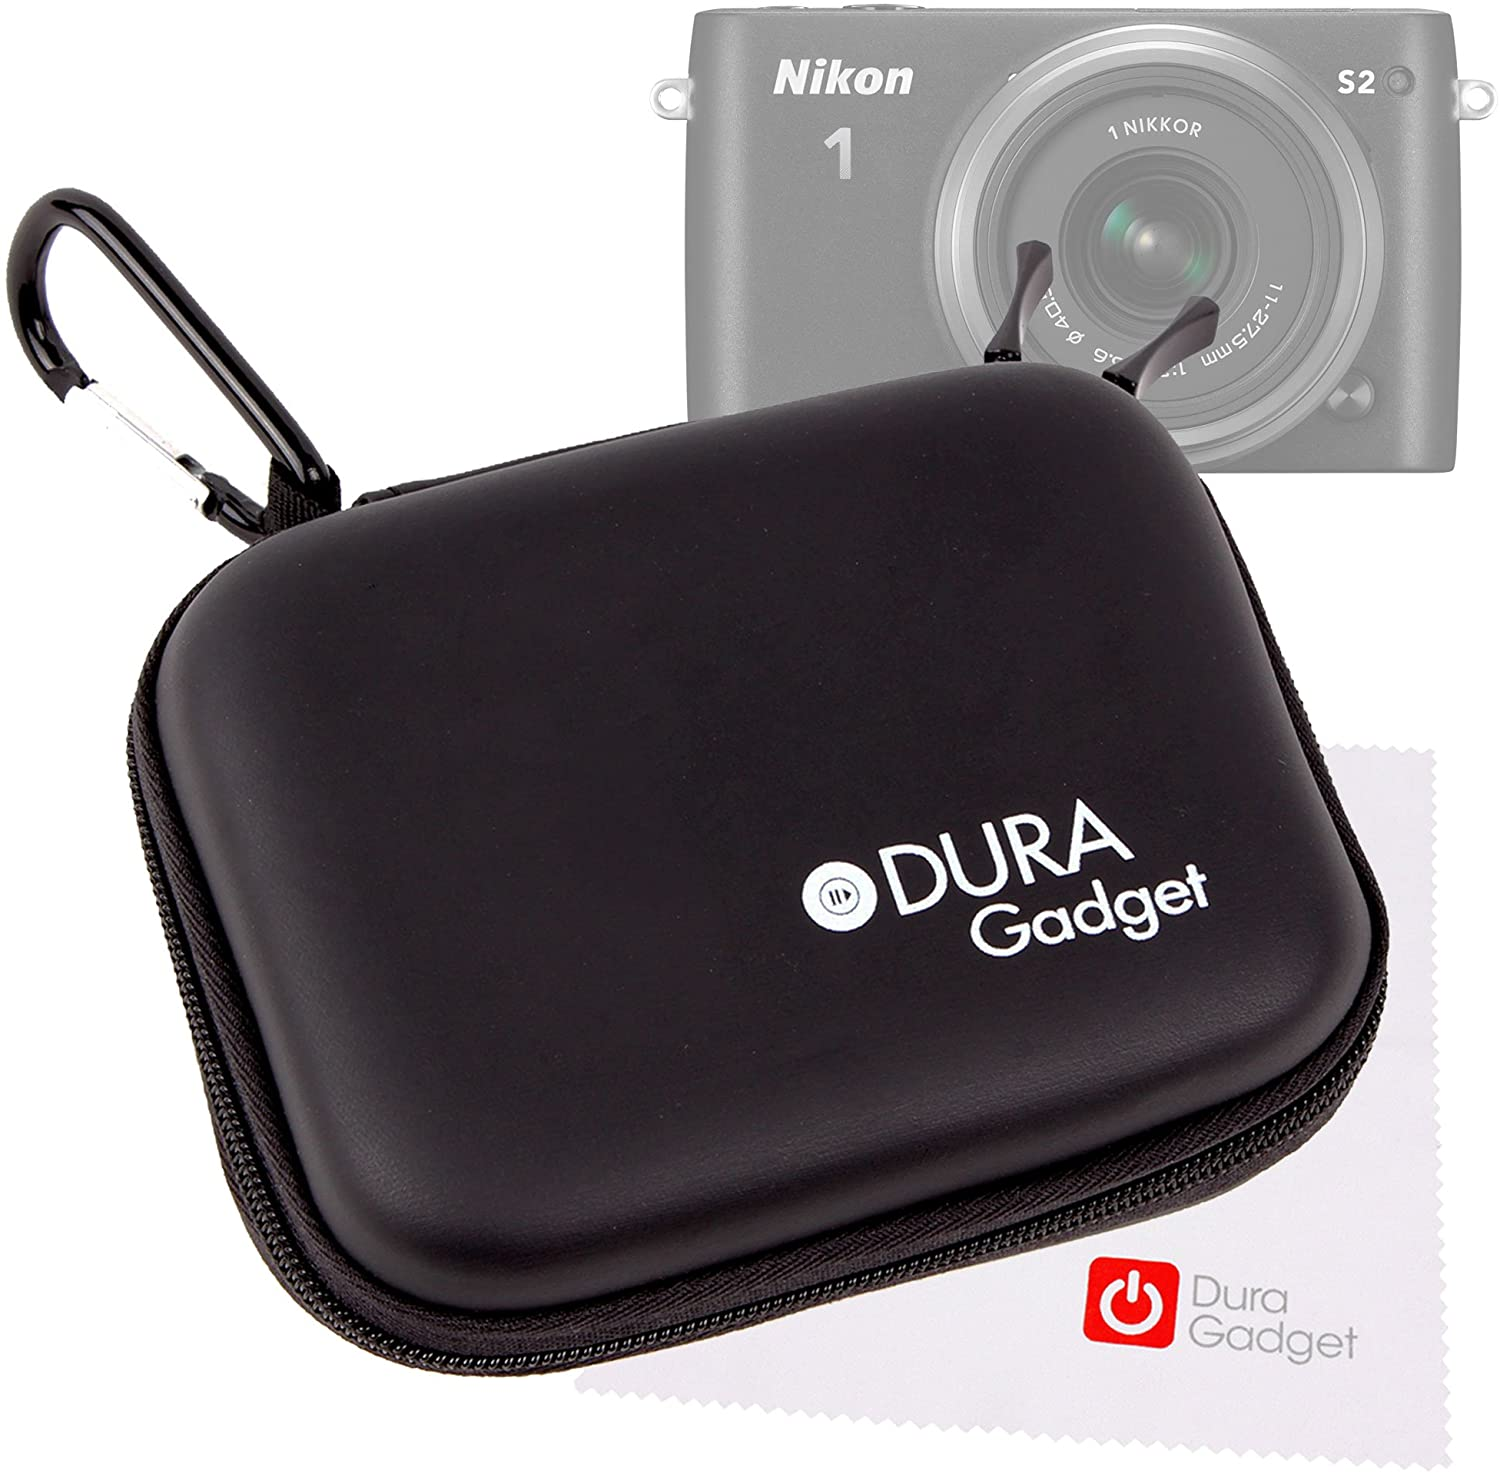 DURAGADGET Black 'Shell' Case w/Belt Clip - Compatible with Nikon 1 S2 + Cleaning Cloth